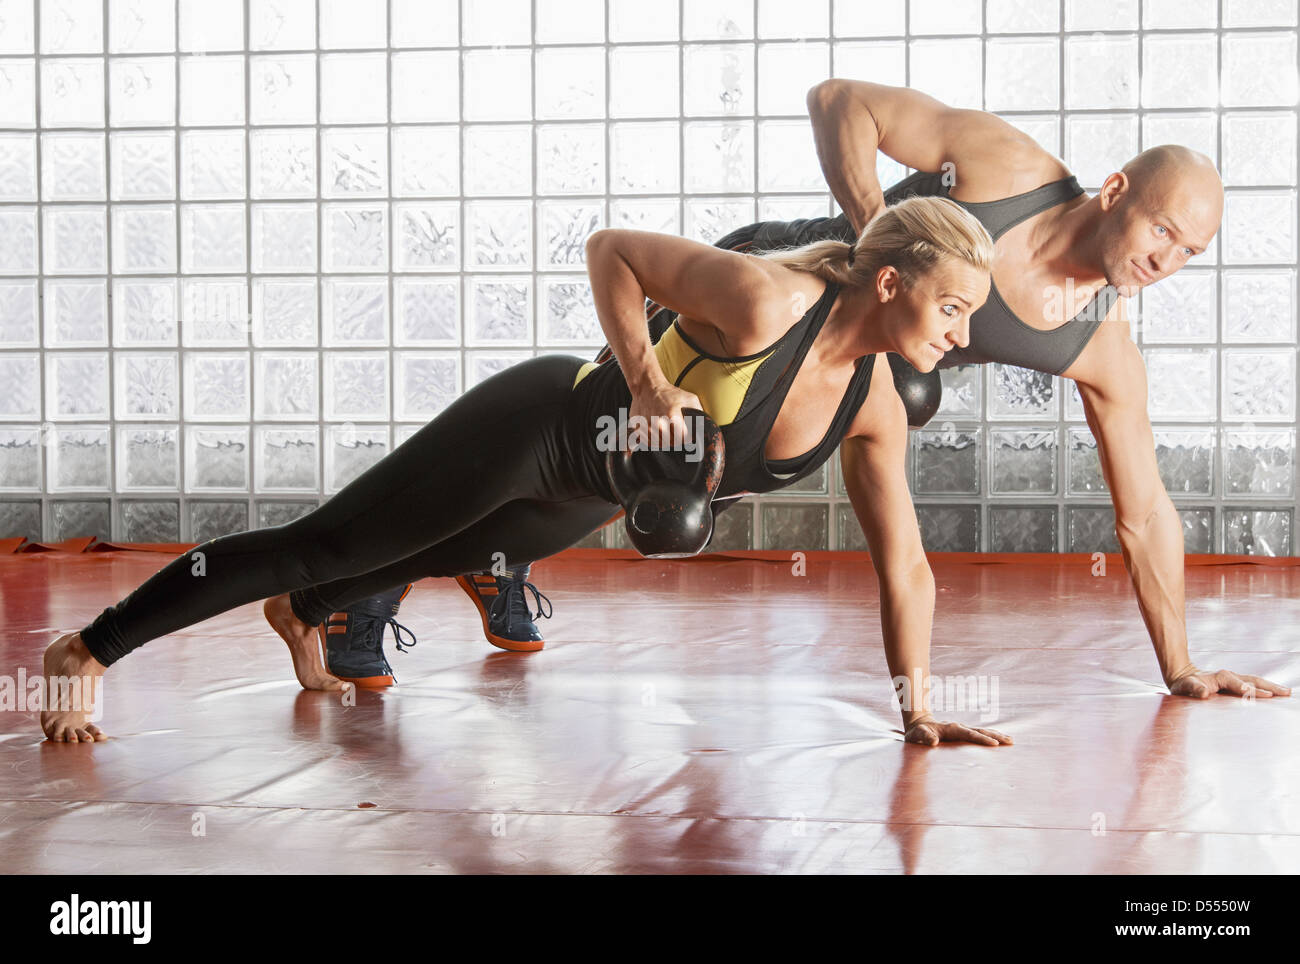 Couple lifting weights in gym - Stock Image